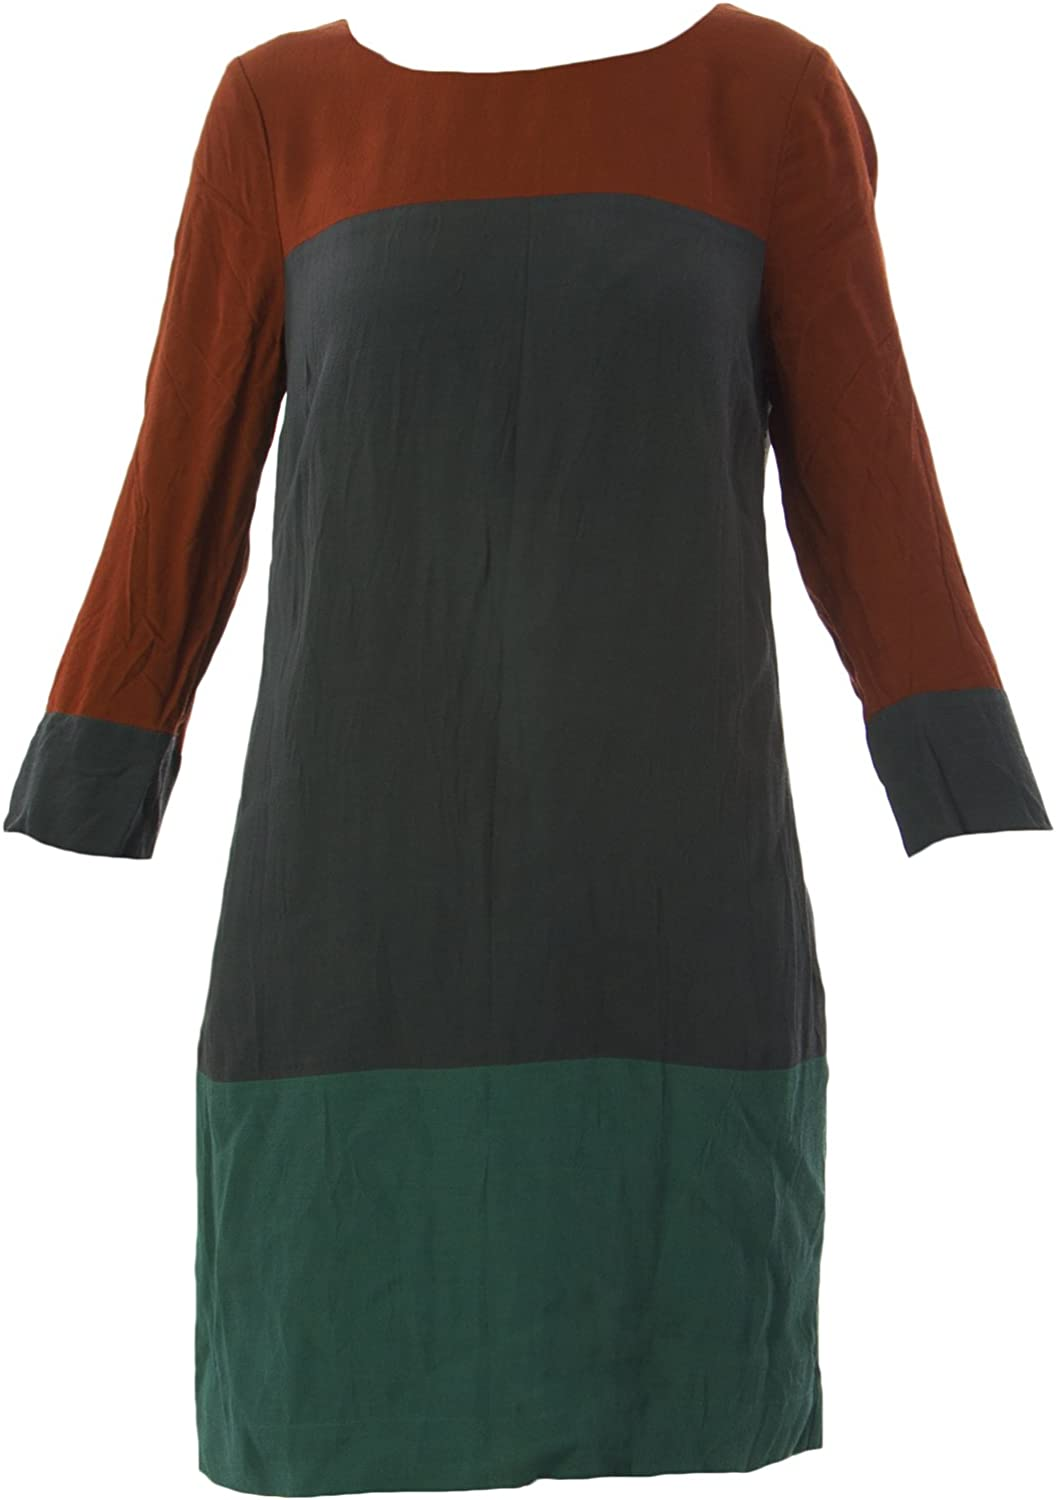 BODEN Women's Colourblock Tunic Dress US Sz 2R Rust Grey Teal